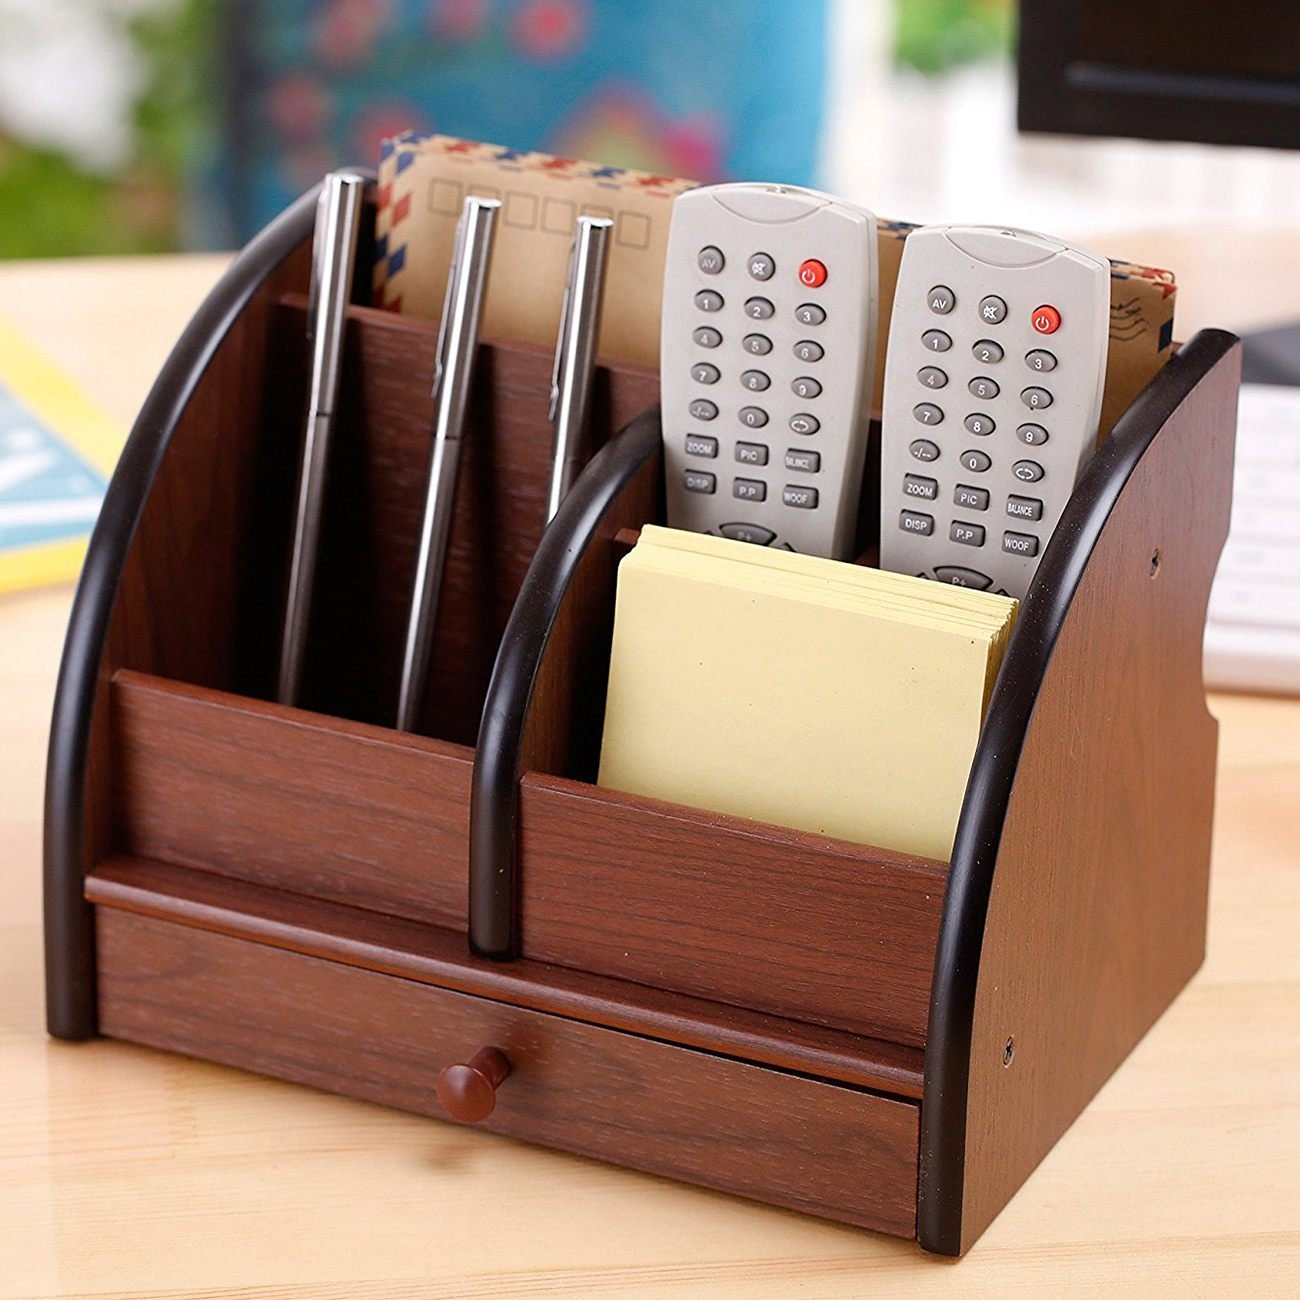 Nrpfell 5-Compartment Luxury Brown Wood Office Desktop Organizer/Letter Sorter with Drawer by Nrpfell (Image #5)